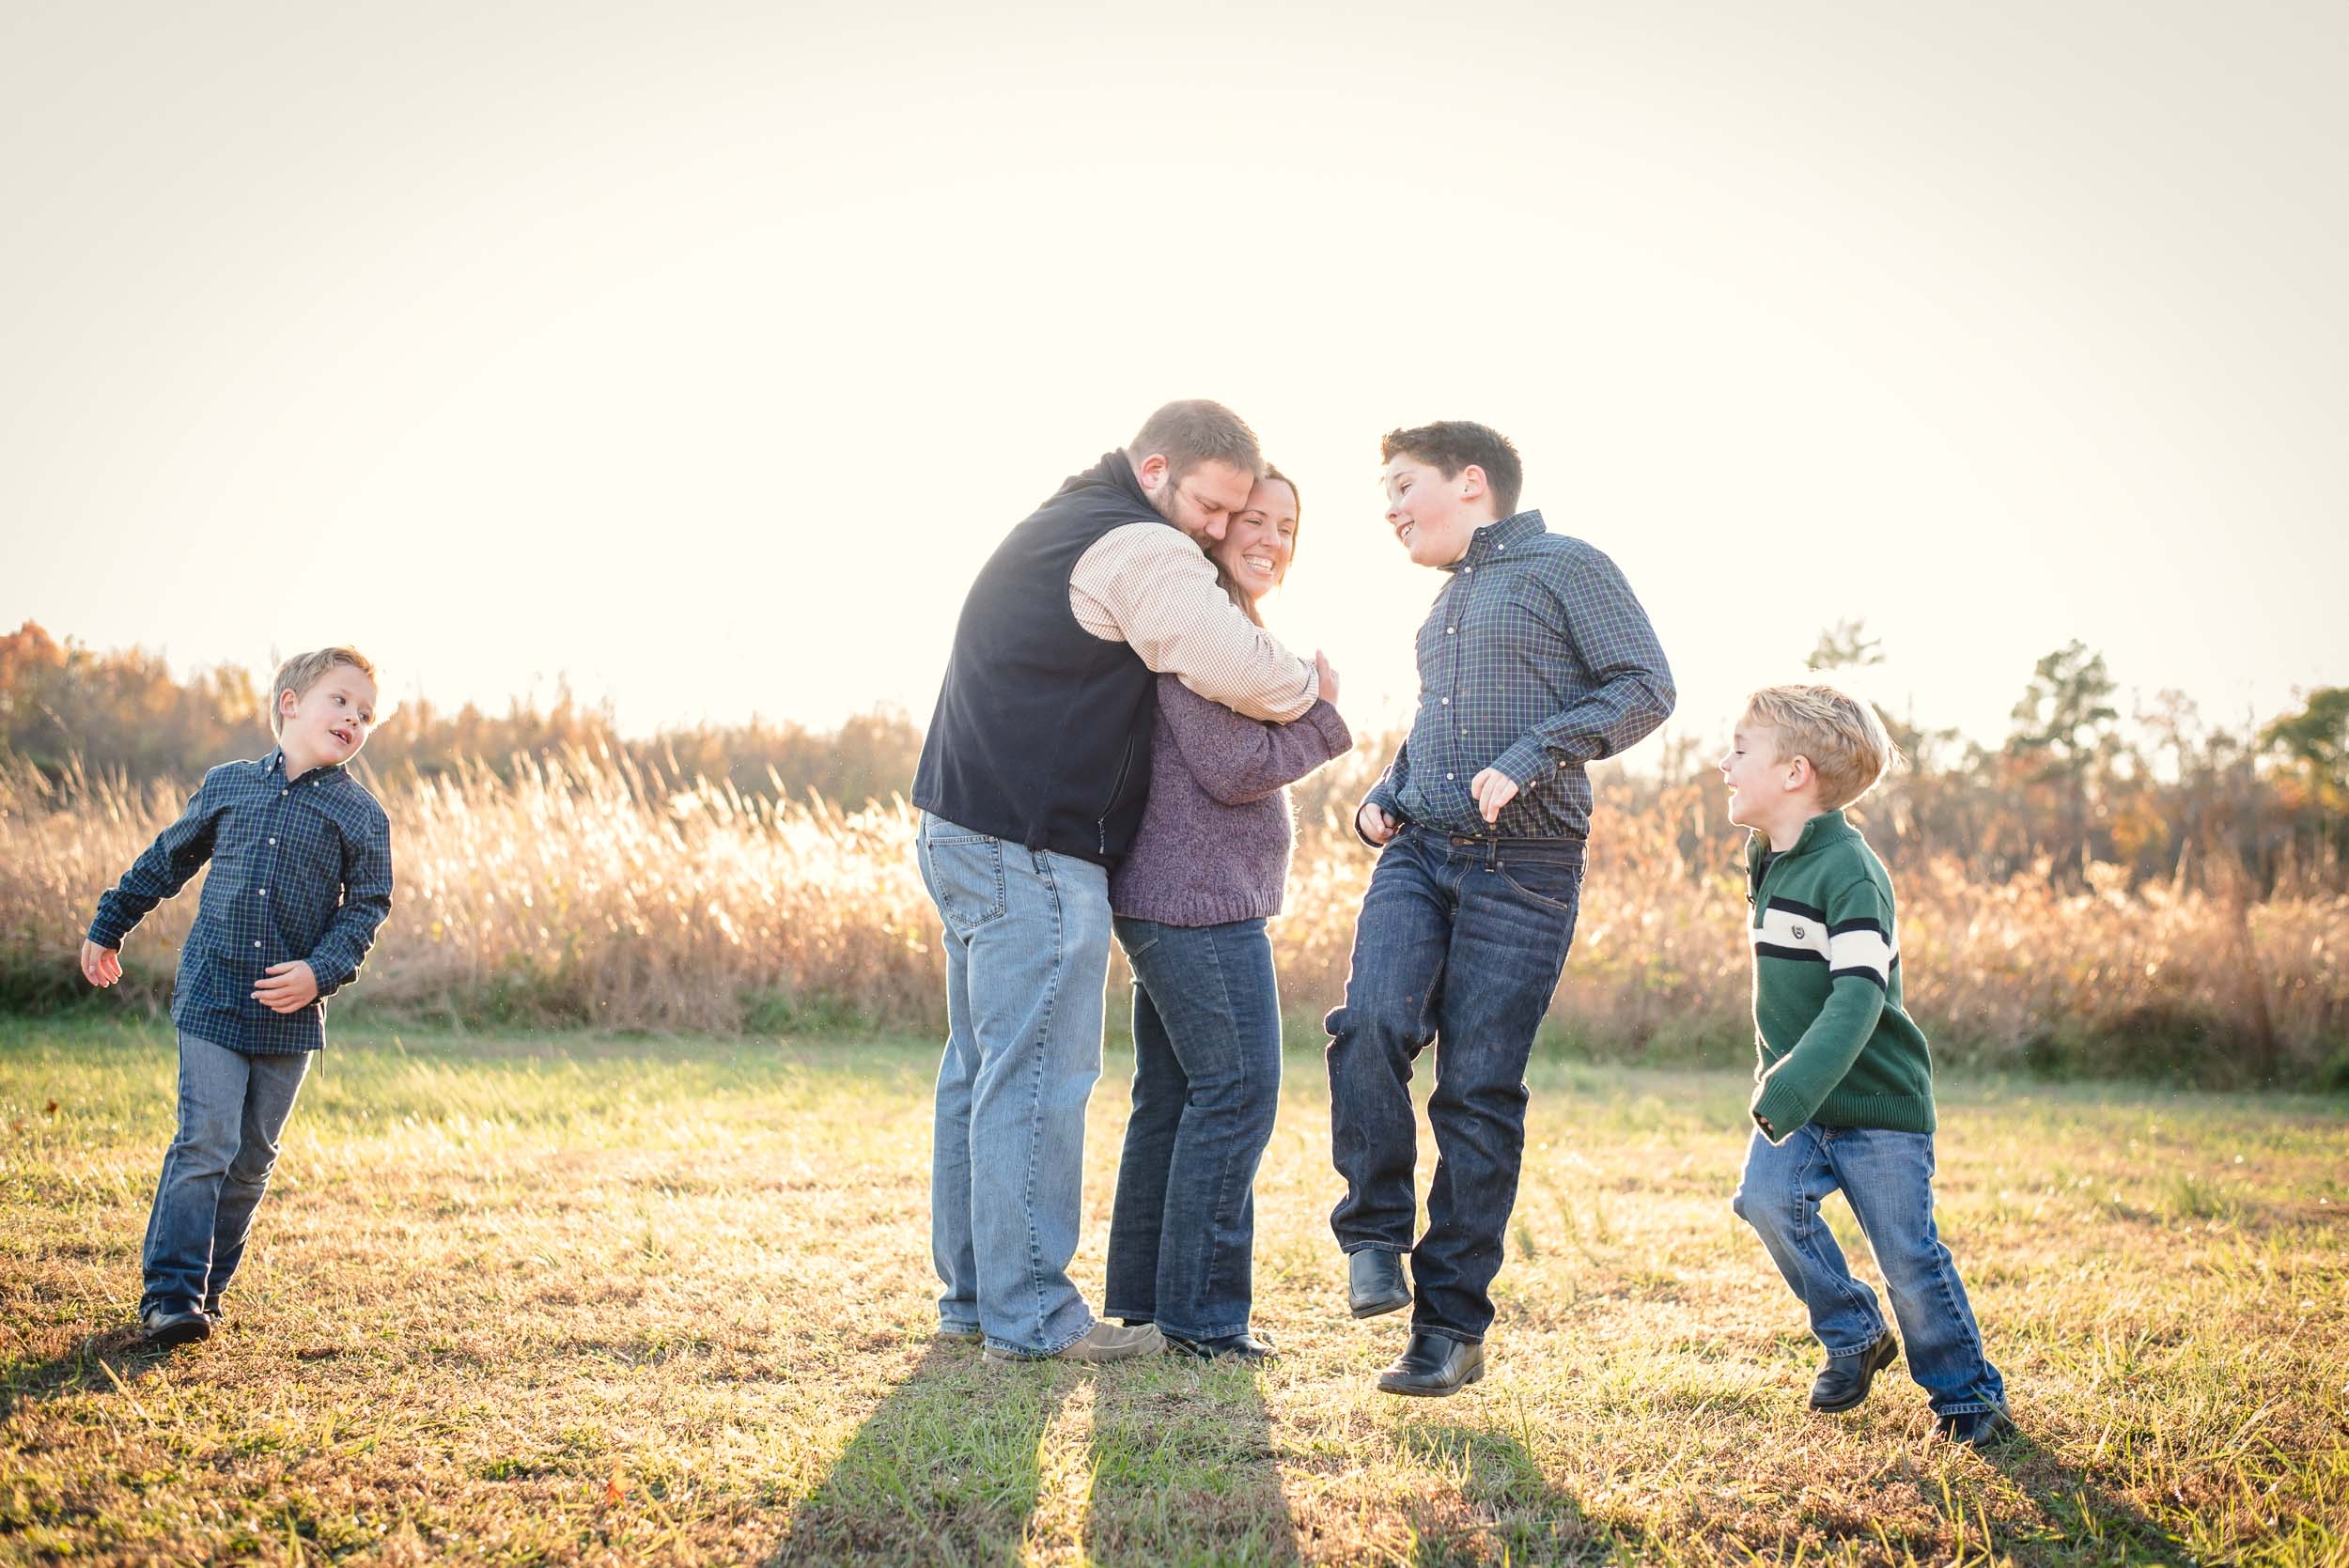 Bohlman_Fall_Family_Photo_Session_Maryland_Eastern-Shore_Adkins_Arboretum(8of11).jpg